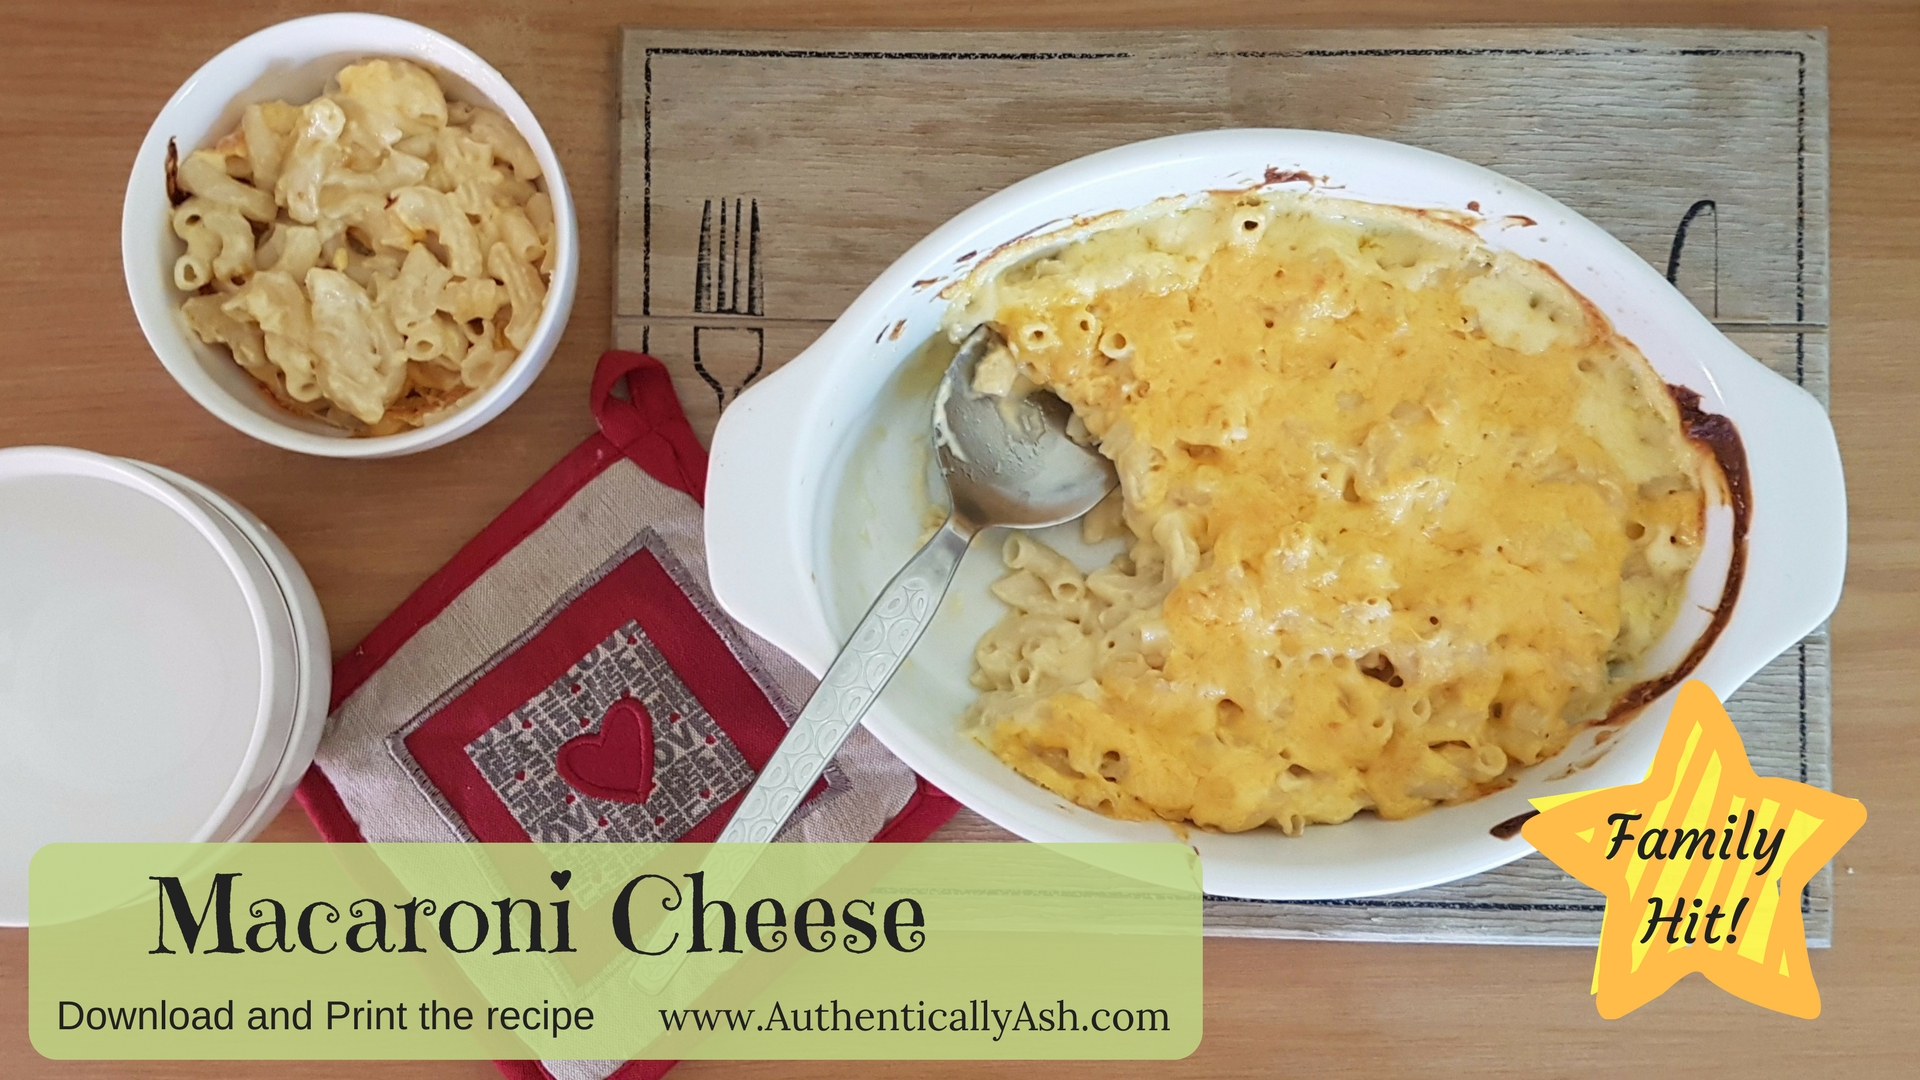 Easy Macaroni Cheese Recipe | AuthenticallyAsh.com